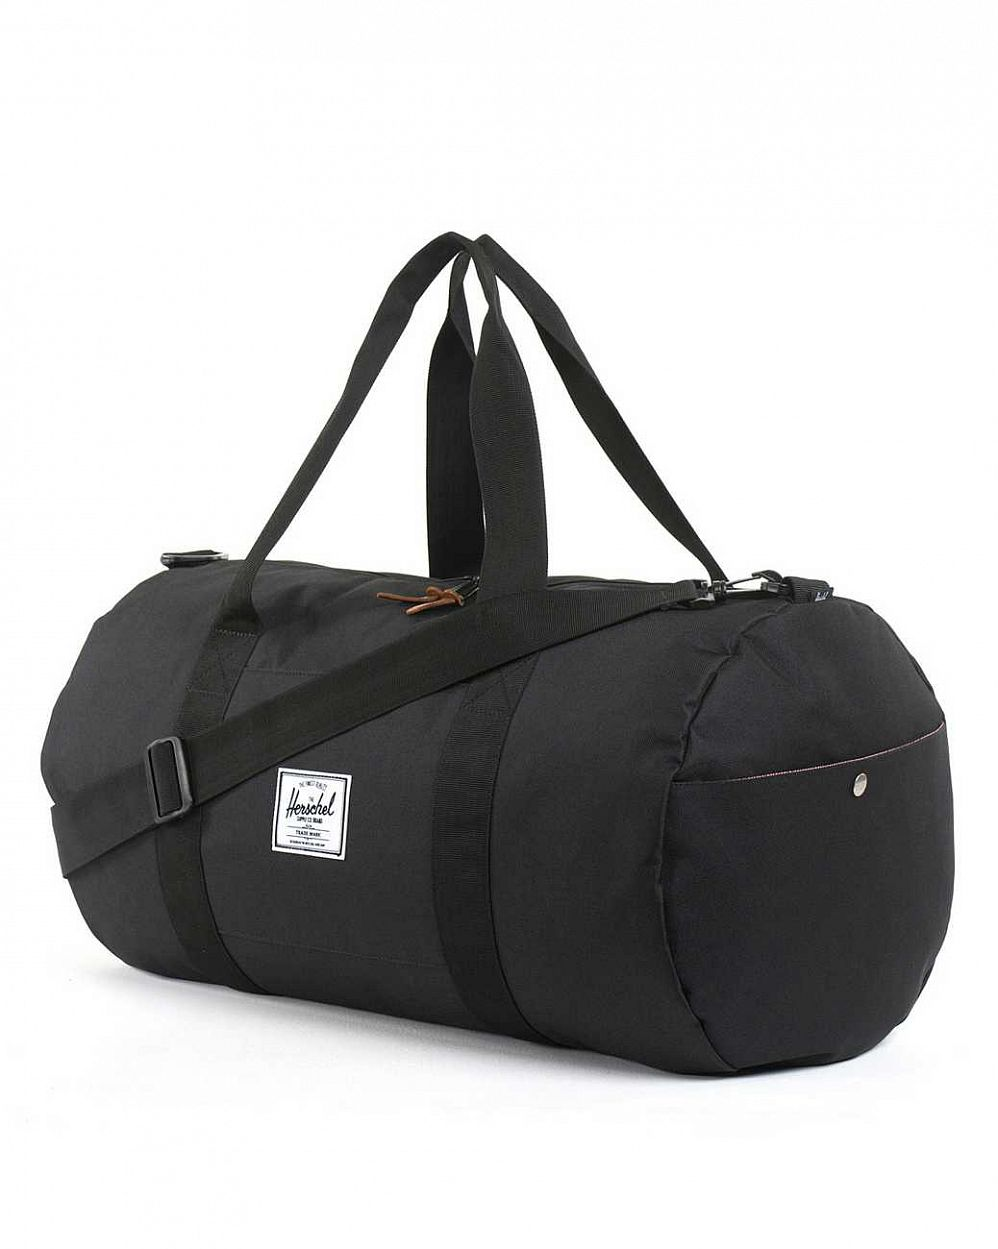 Сумка спортивная Herschel Sutton Black купить в интернете